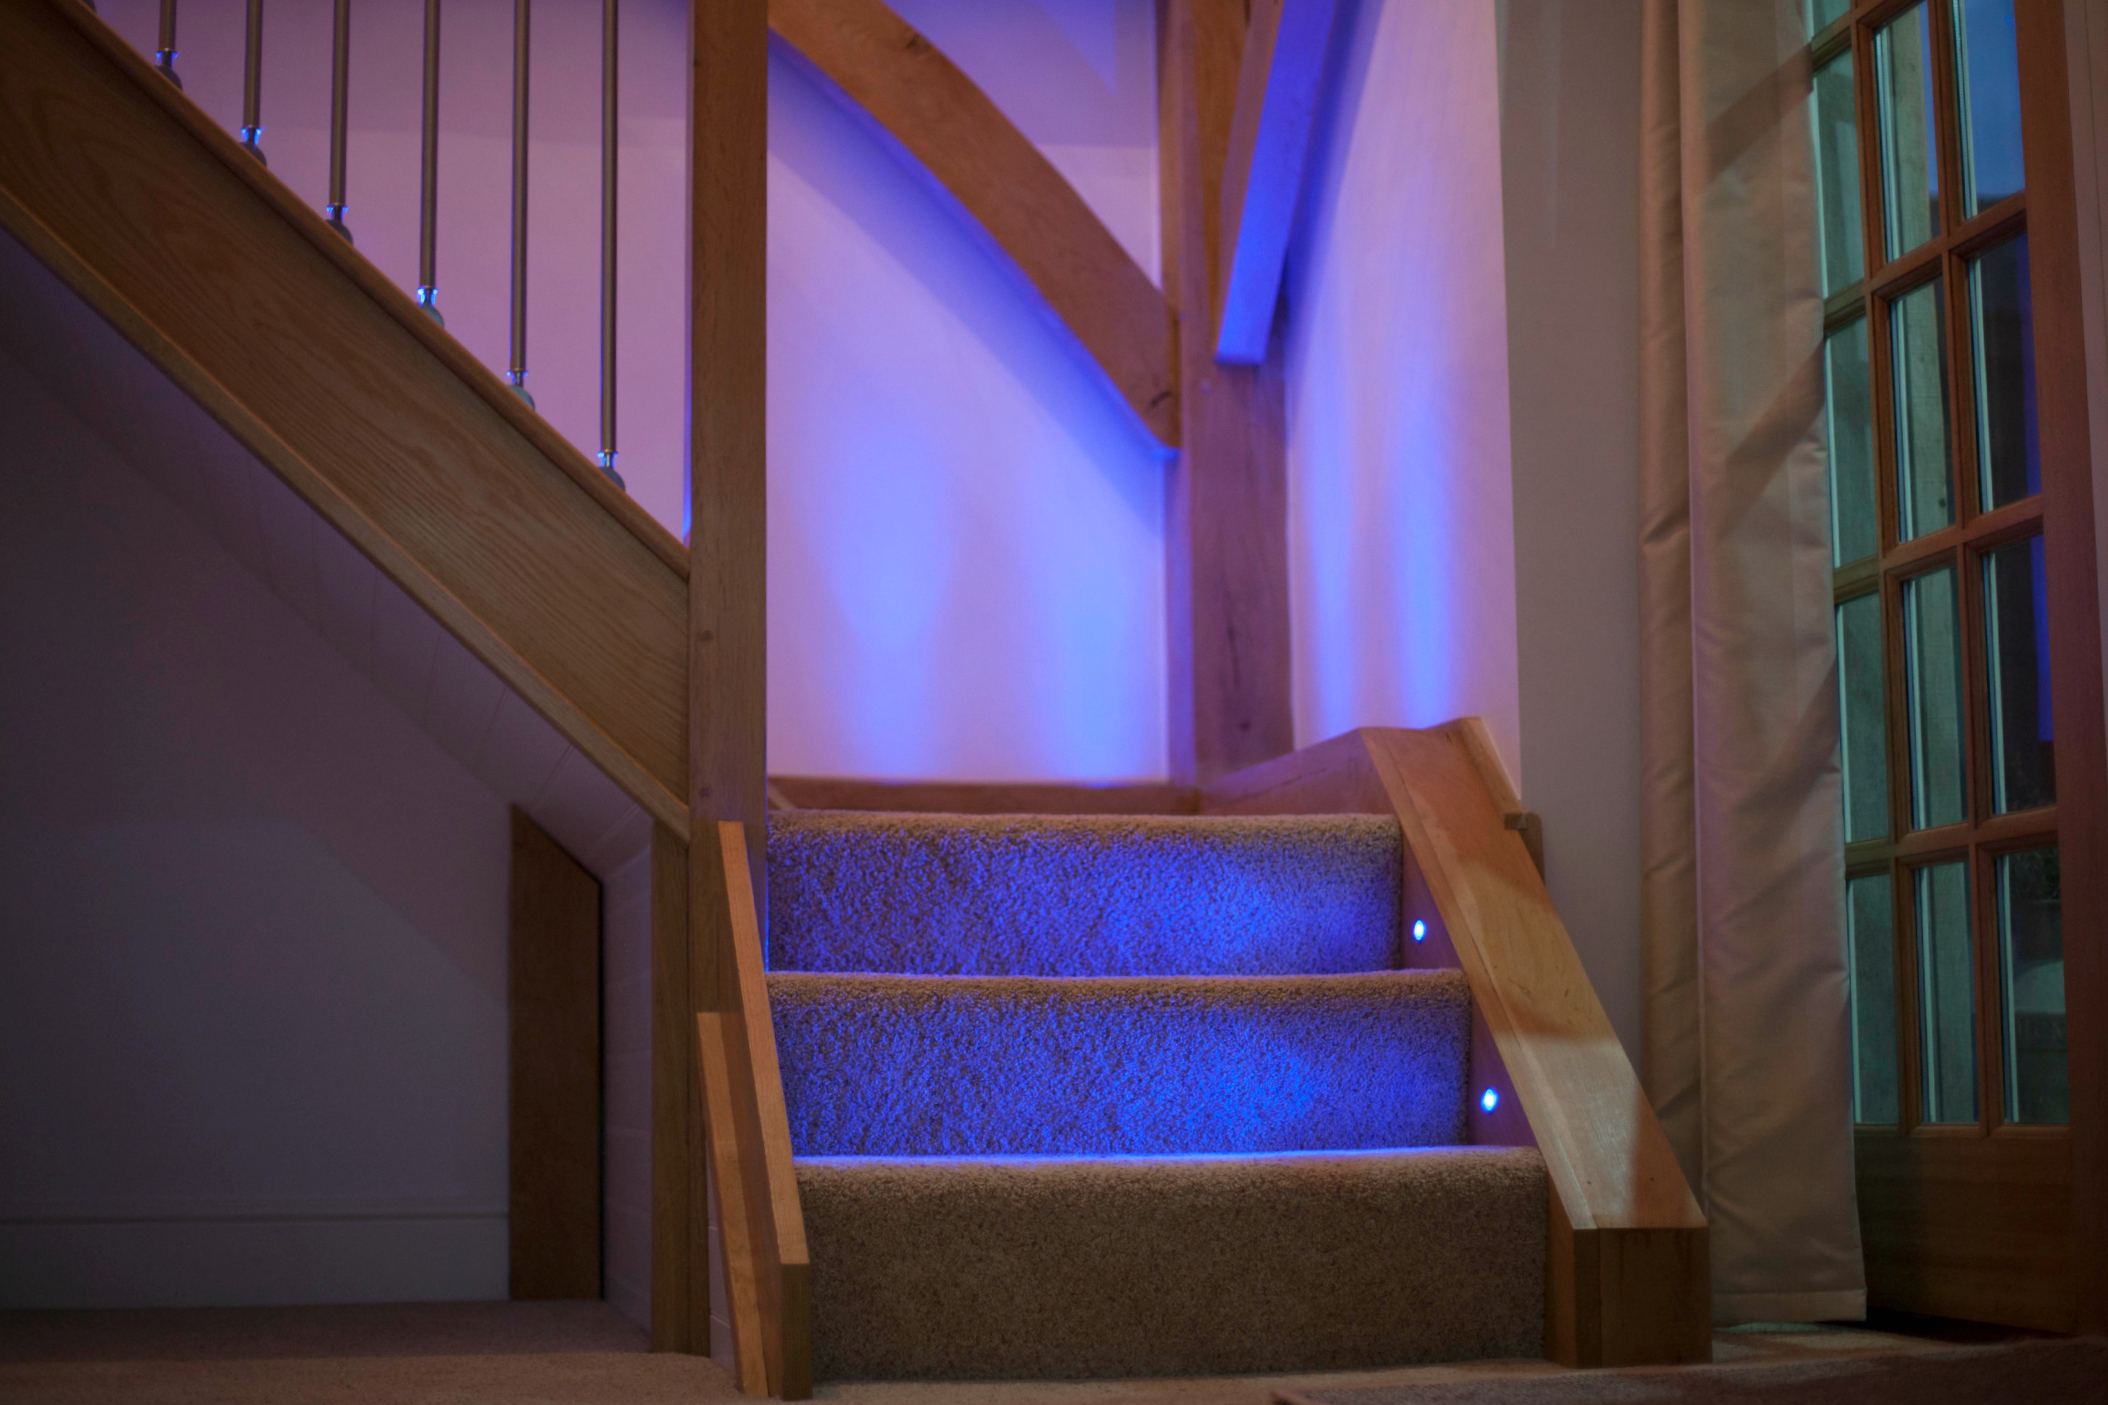 Blue LED lighting up staircase